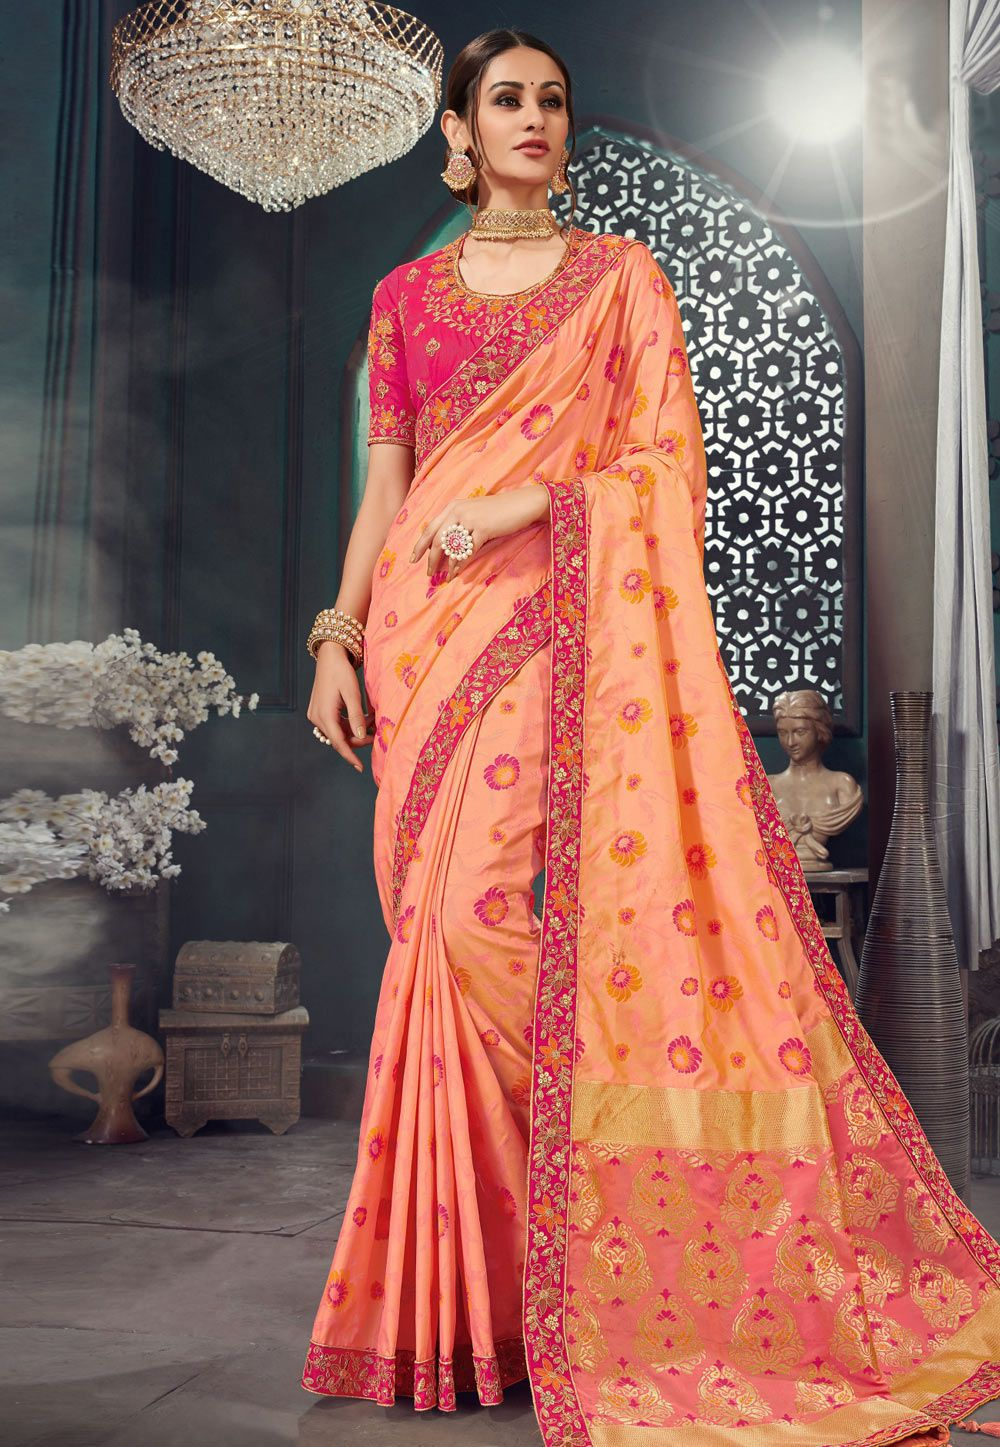 How to Wear Saree for Plus Size-16 Saree Tips for Curvy Ladies